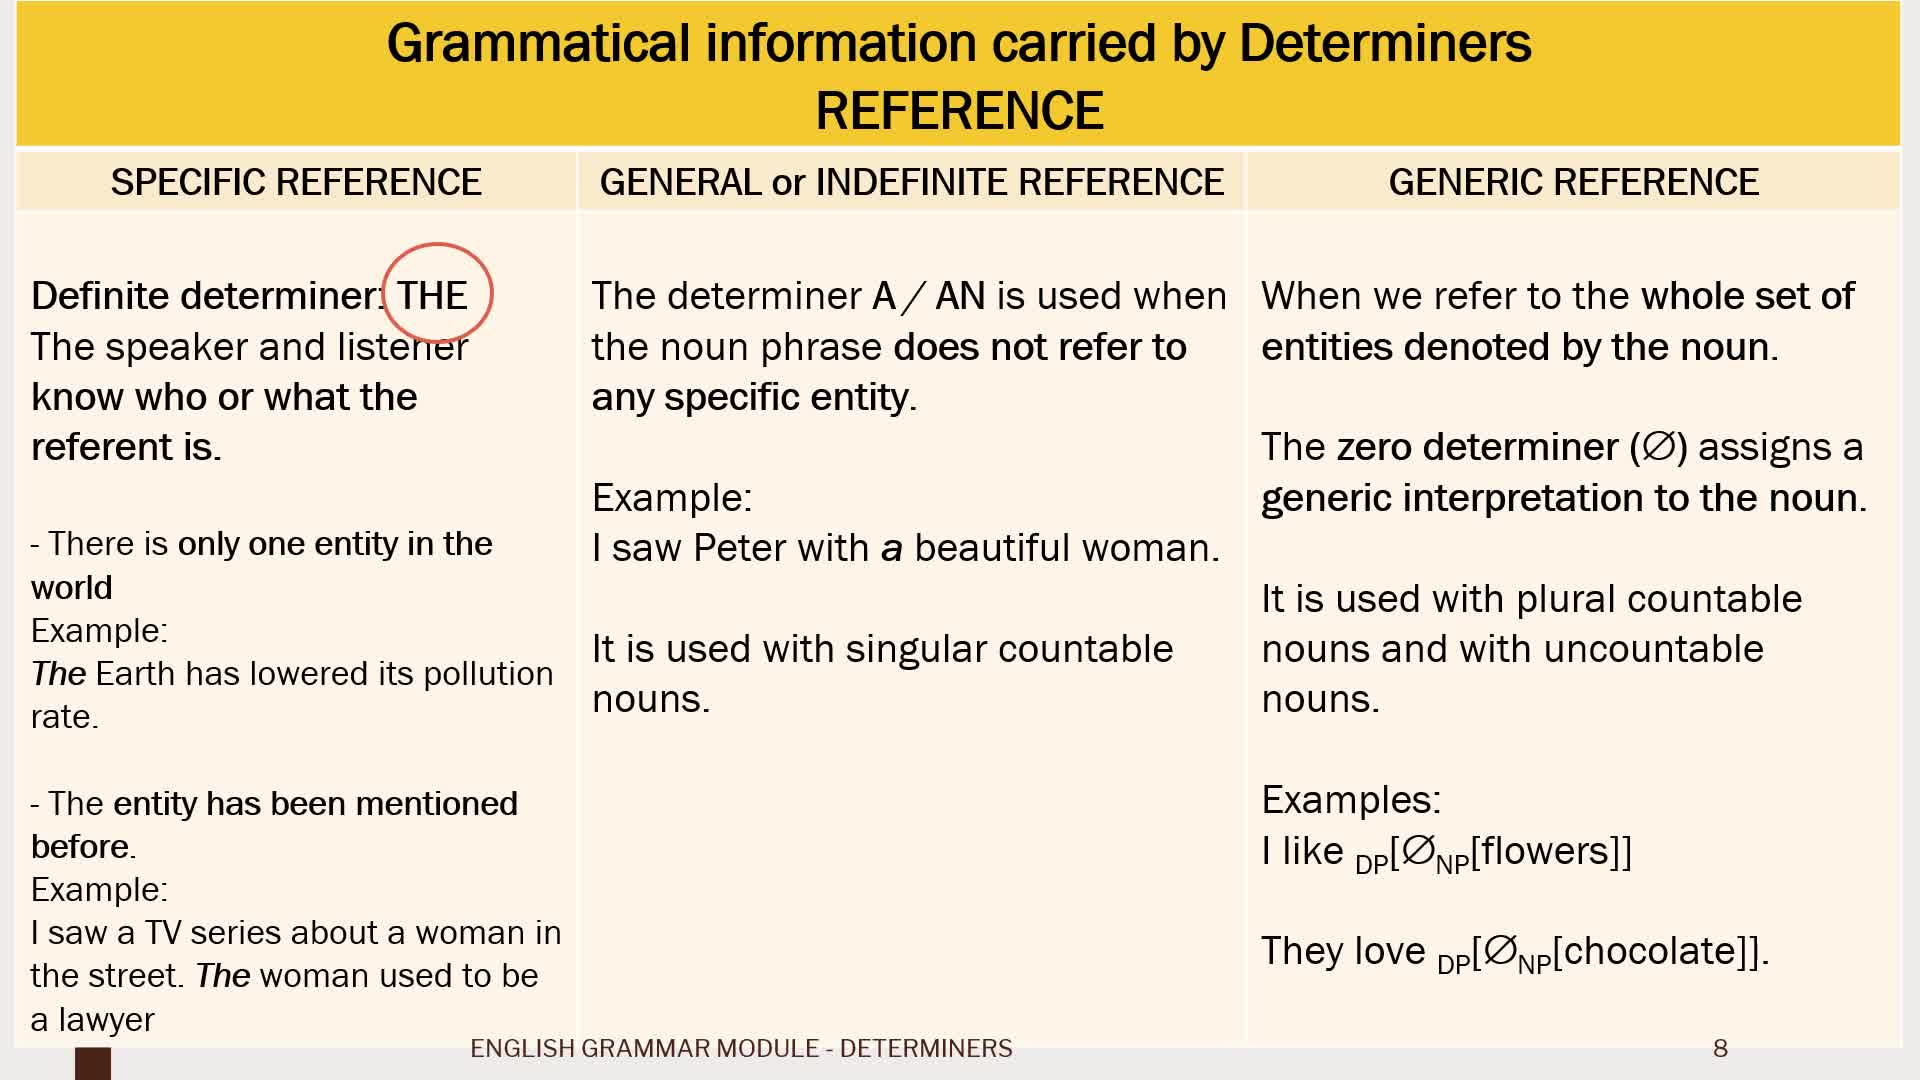 Theoretical explanation - DETERMINERS